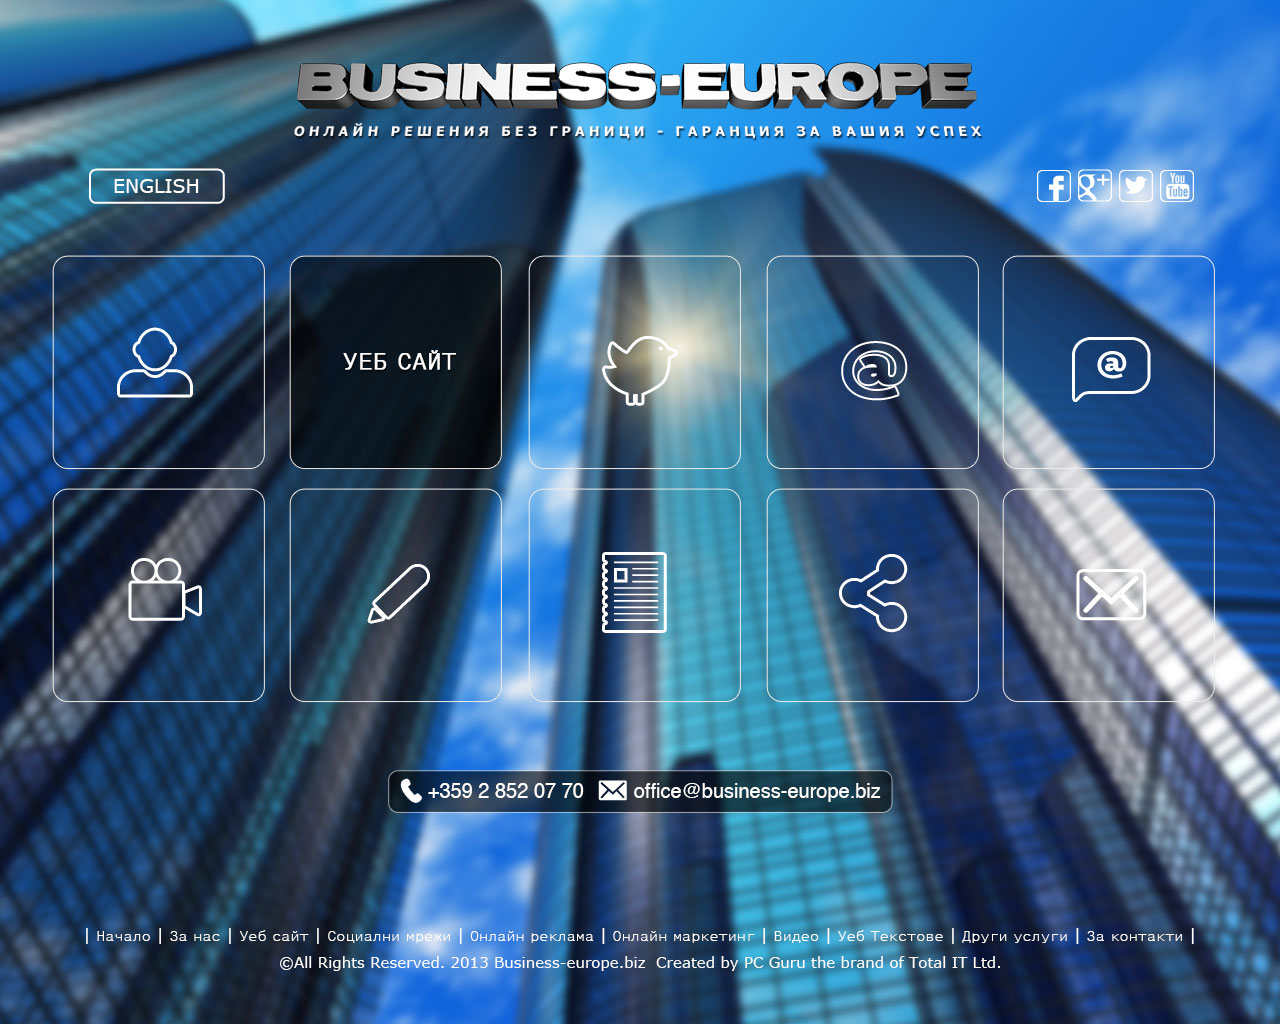 Home page design for our project business-europe.biz